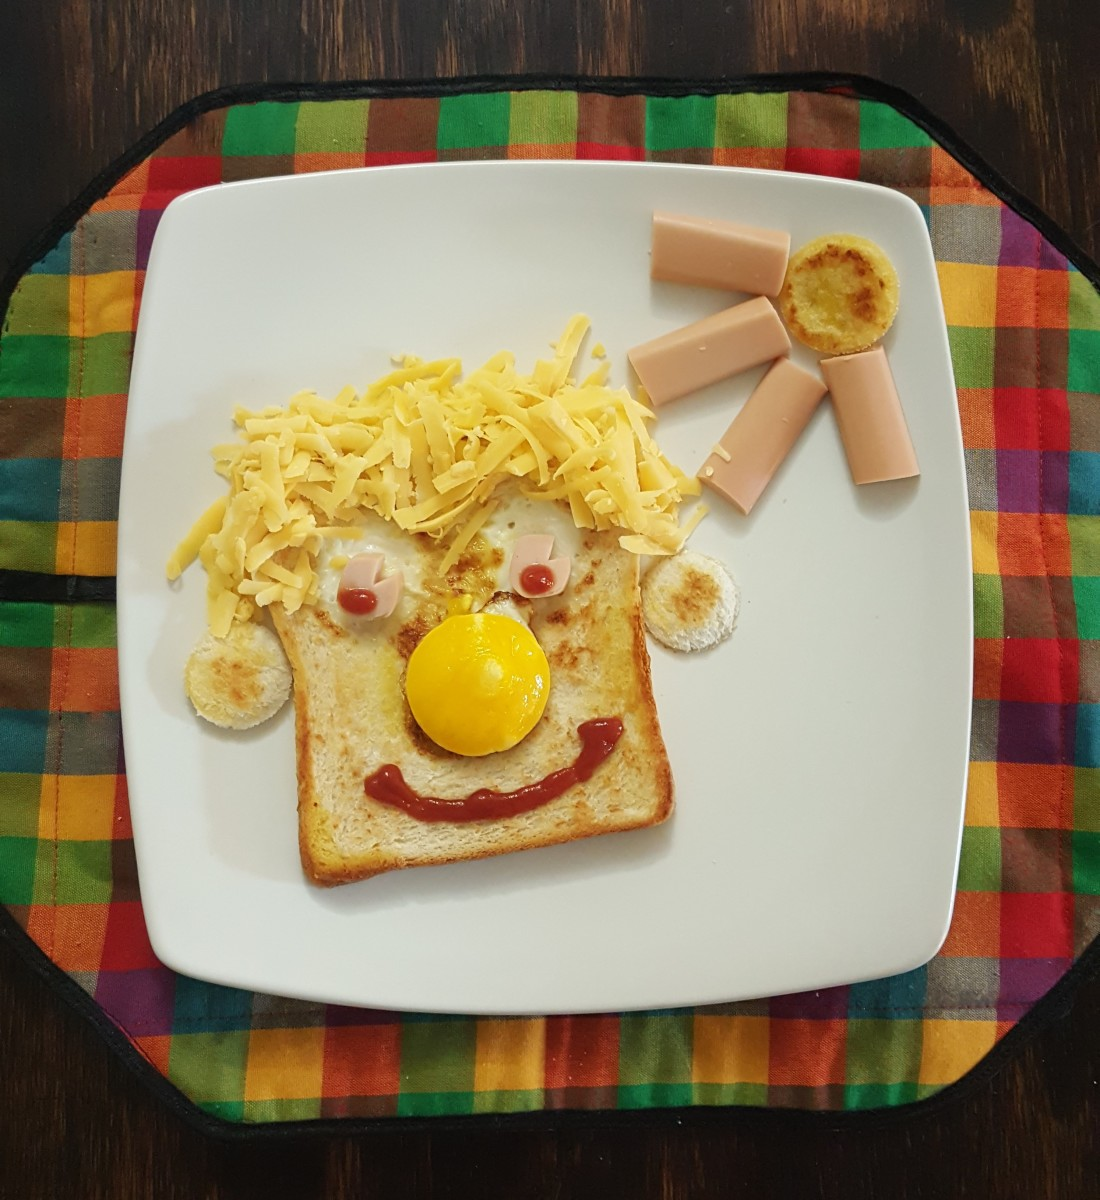 Eggy Faces: A Quick and Easy Kid-Friendly Breakfast Recipe